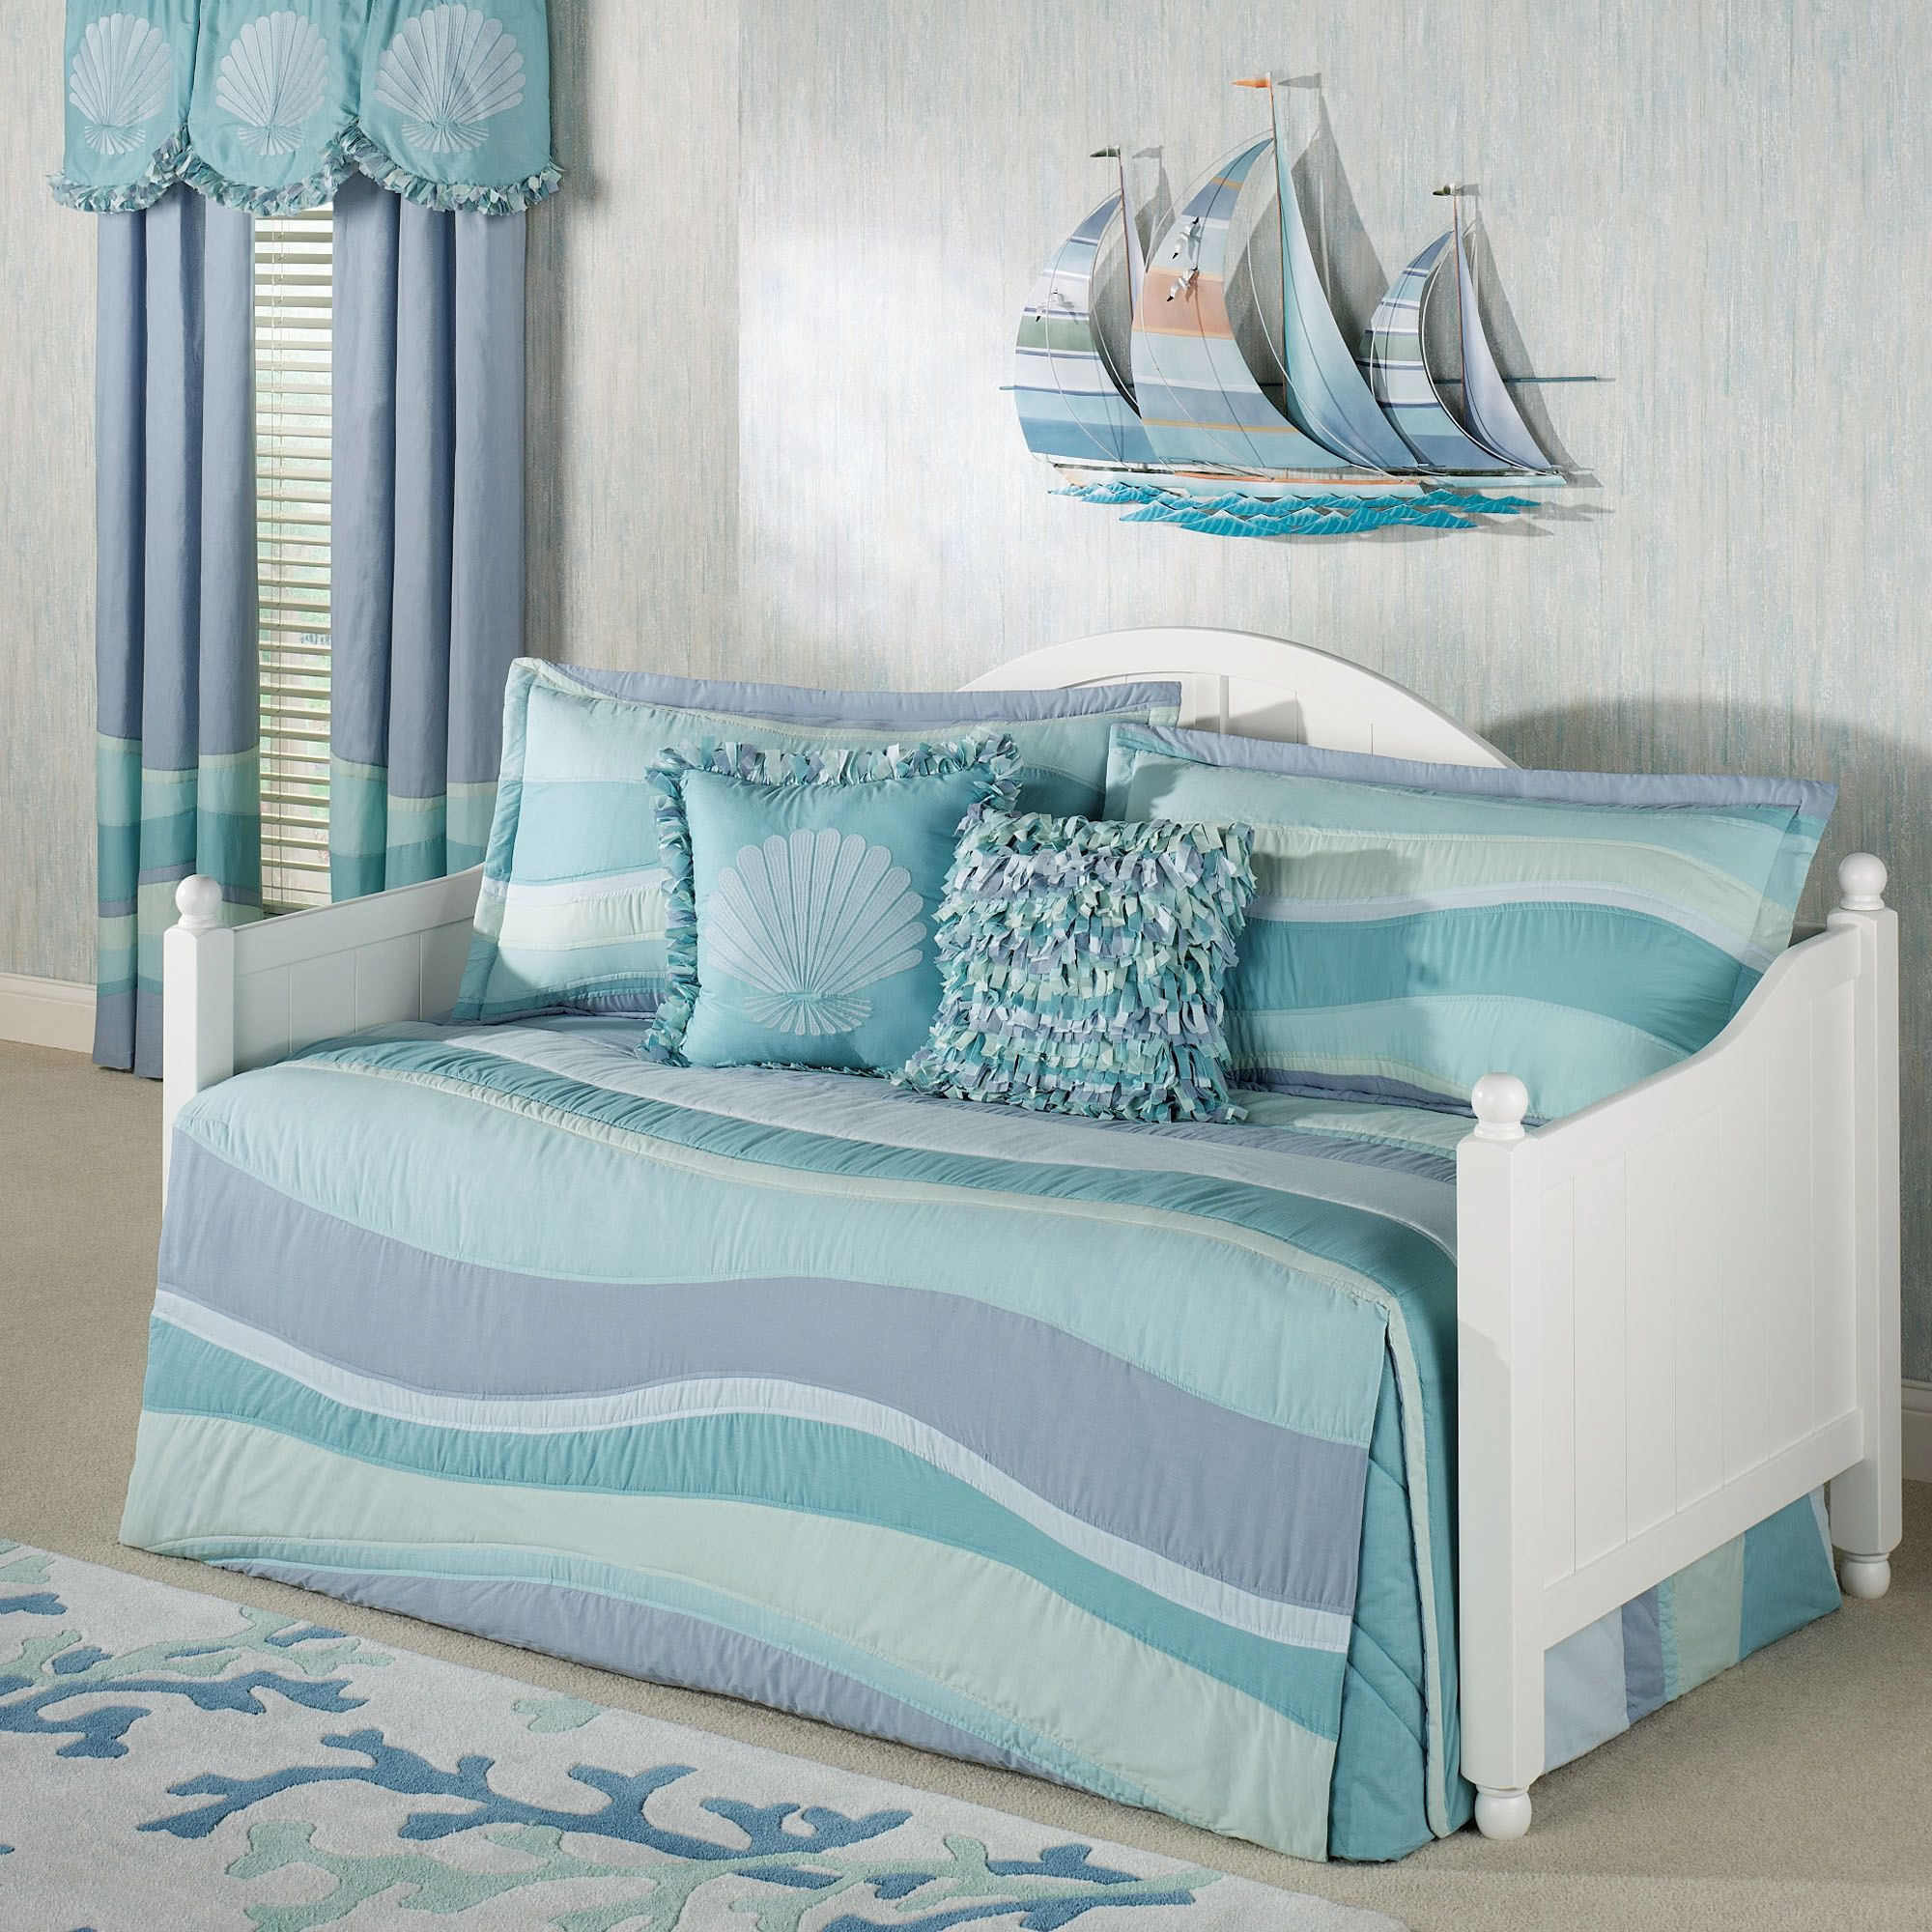 coastal daybed bedding sets photo - 1